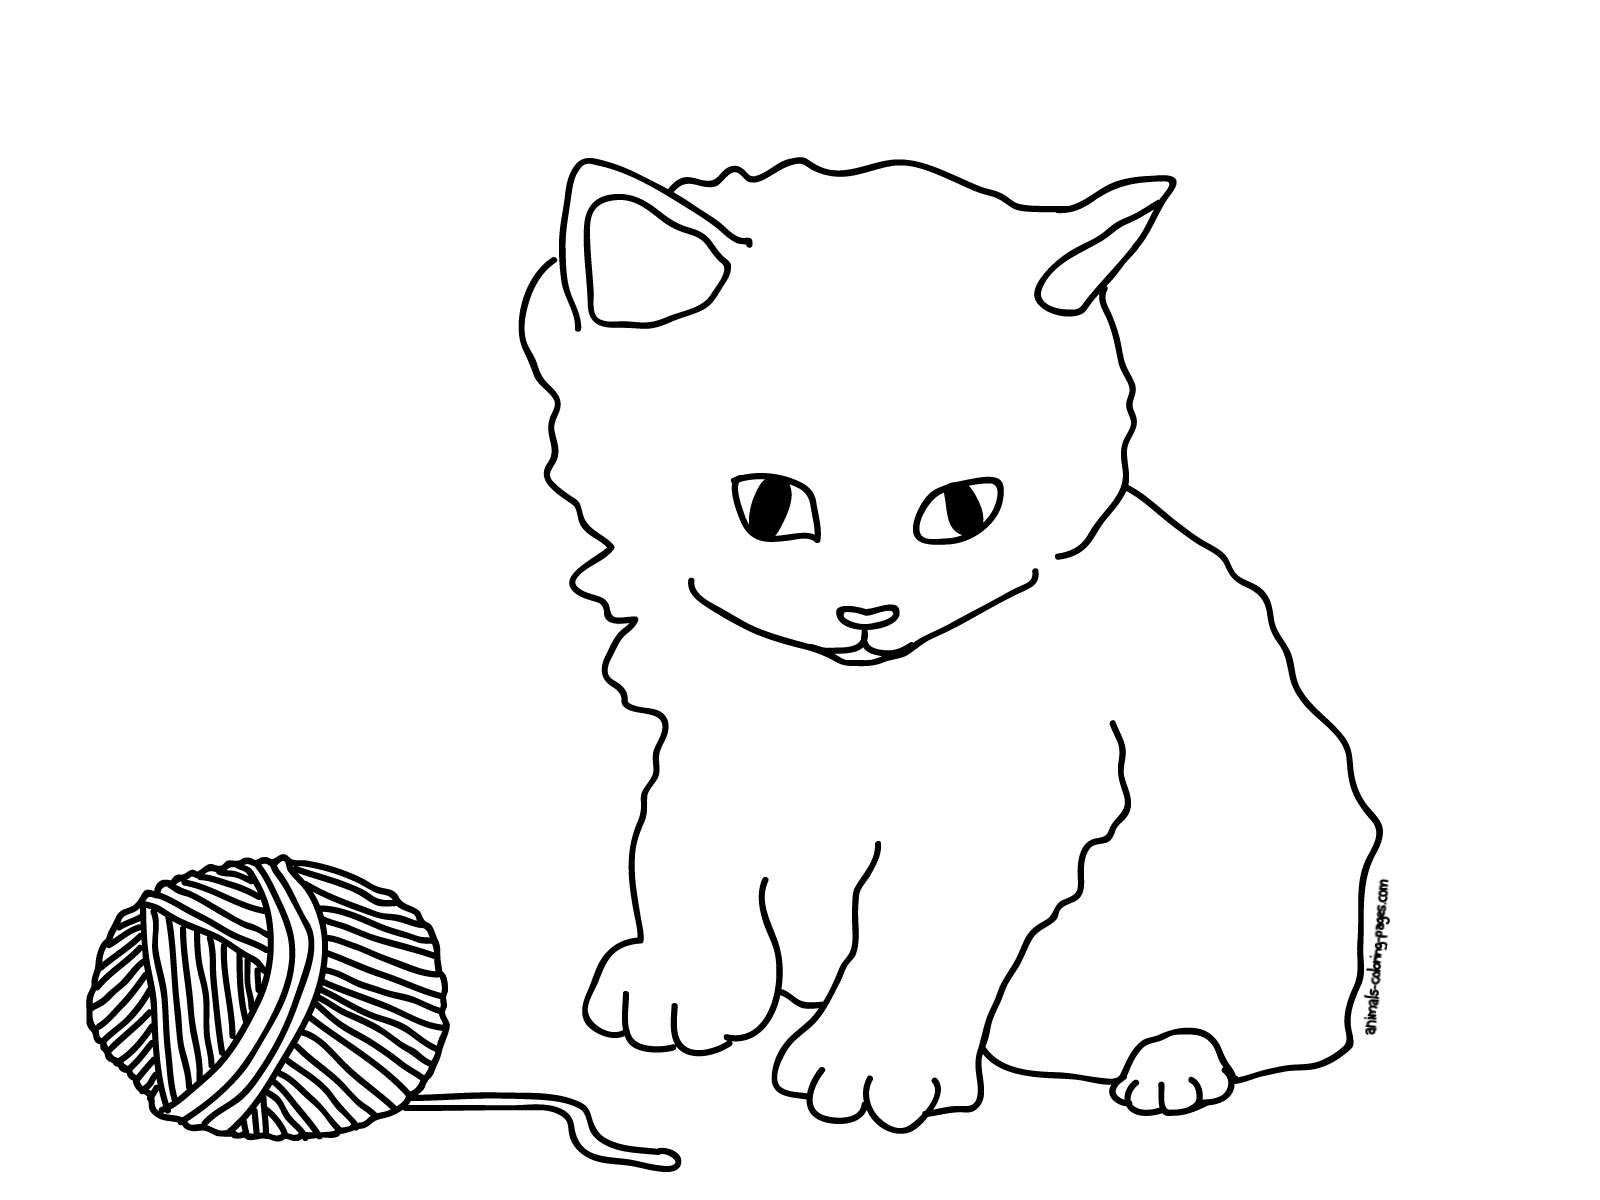 kitty cat pictures to color top 15 free printable kitten coloring pages online color to pictures kitty cat